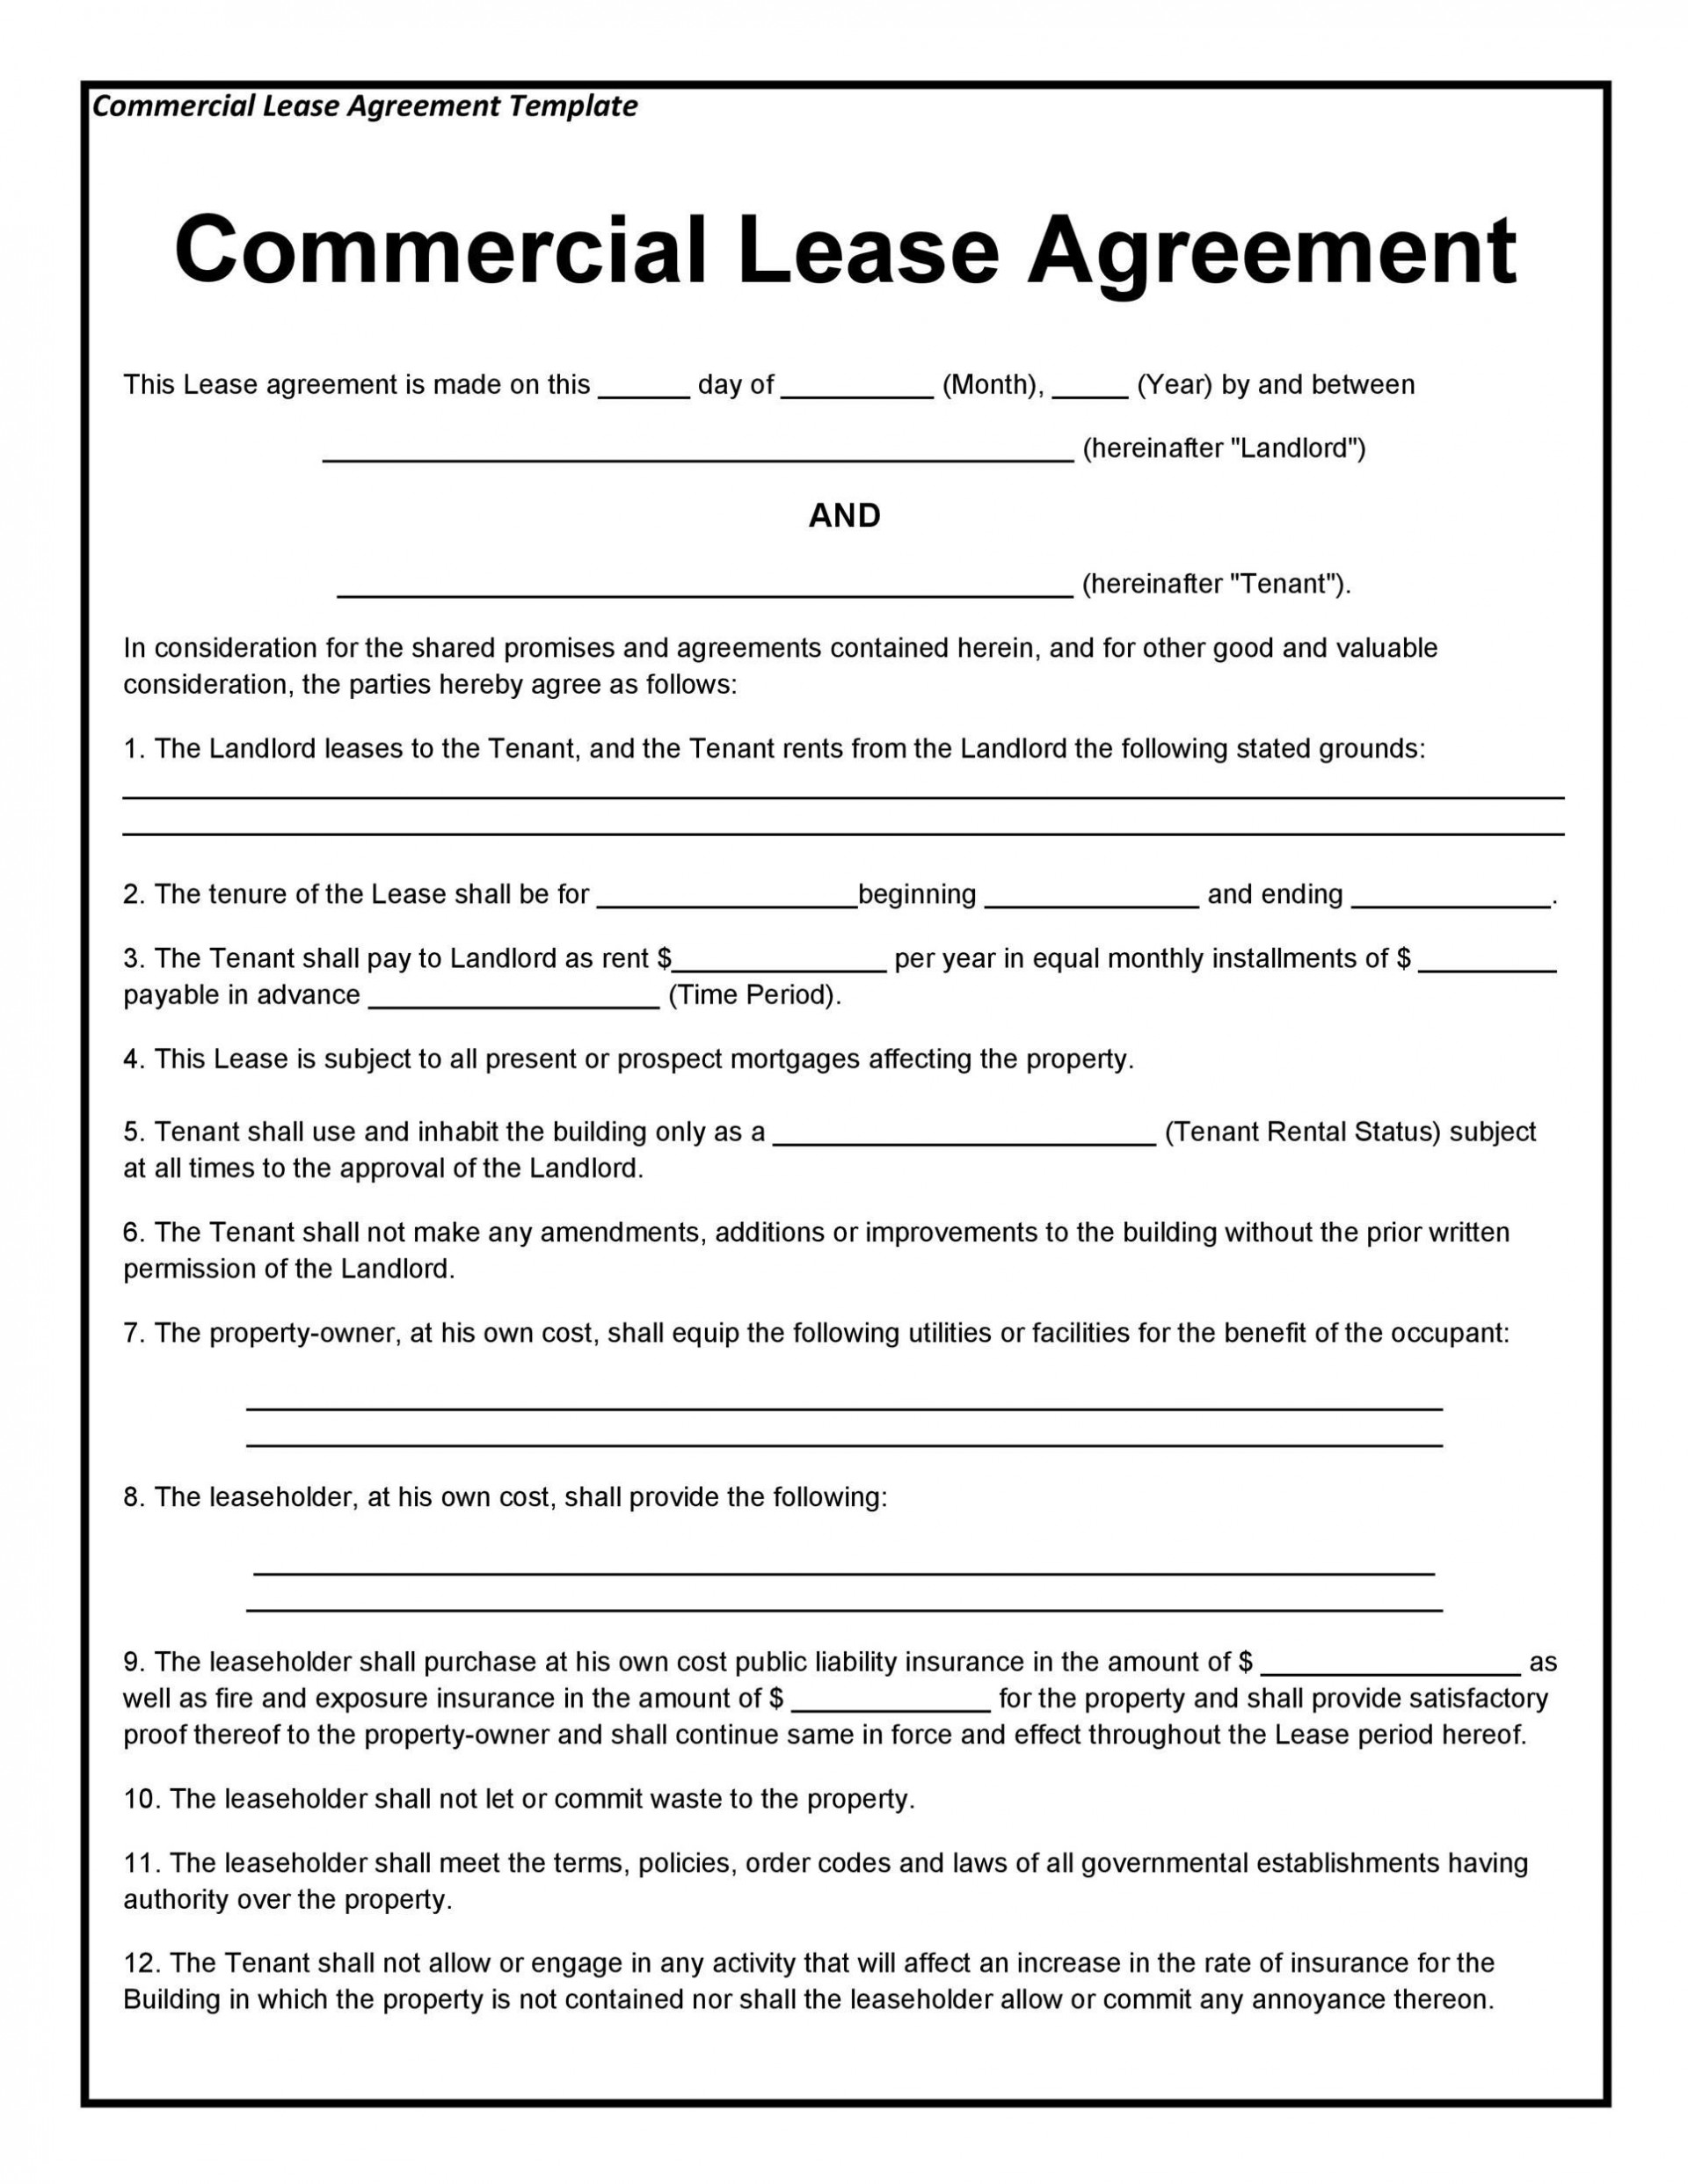 004 Best Template For Lease Agreement Free Photo  Printable Room Rental Commercial Uk Florida1920